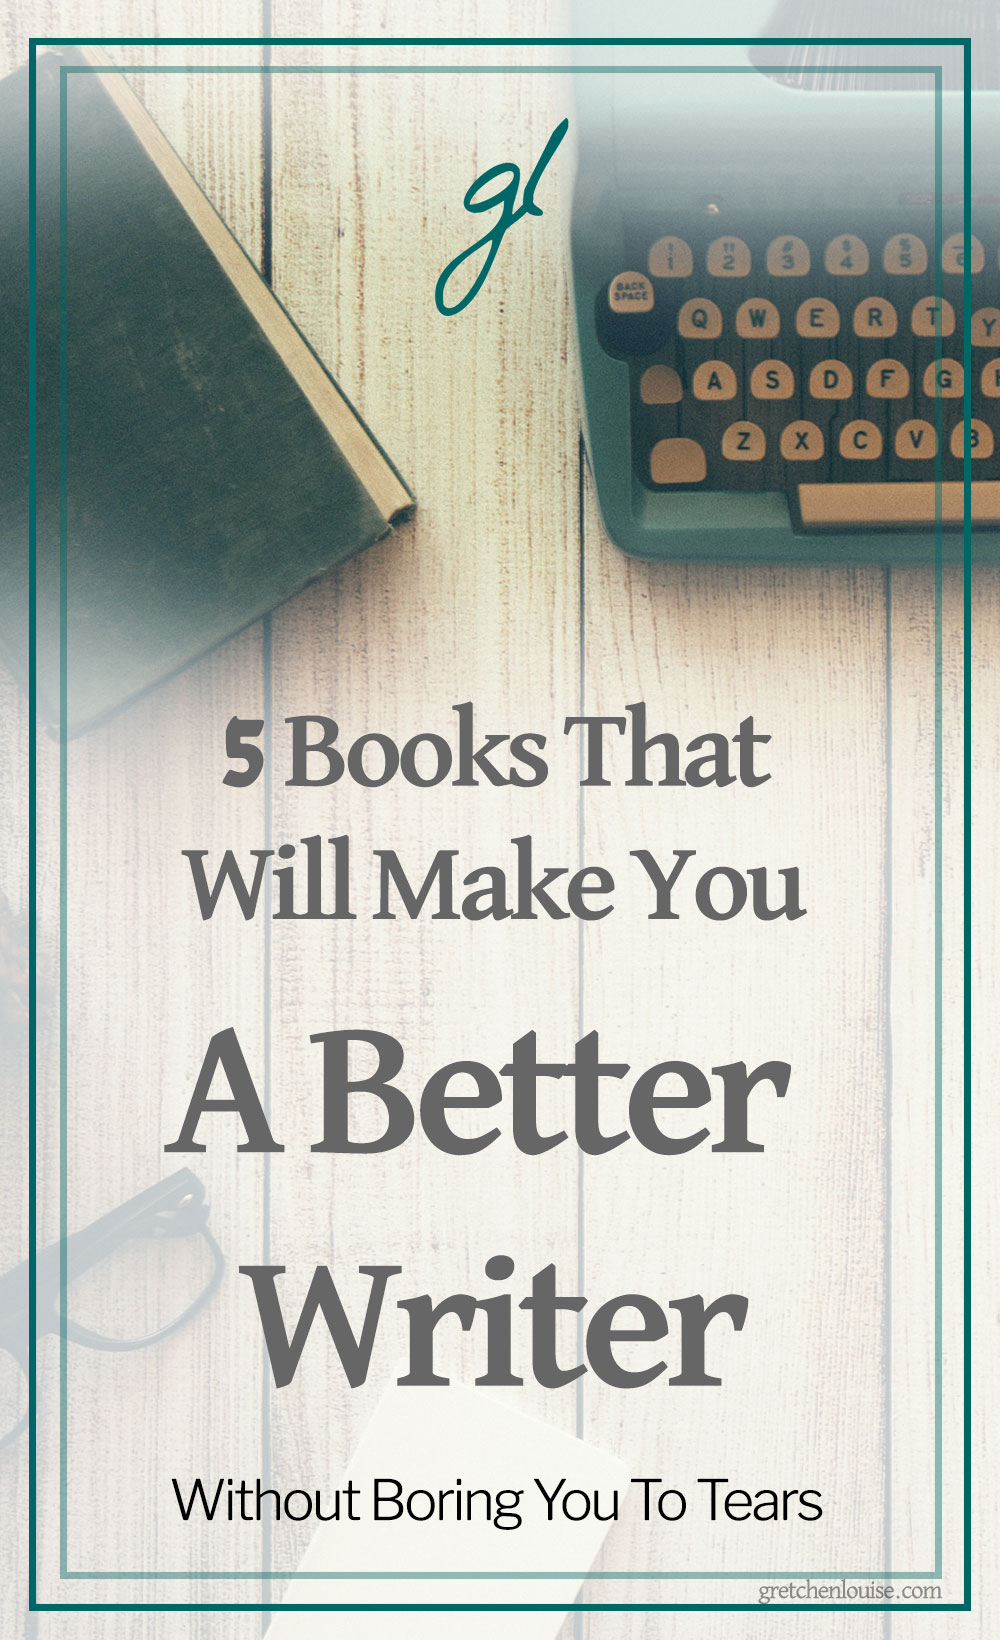 If you're looking for a few books to breathe life into your writing, look no further! These five fun titles I recommend below will fit the bill--without boring you. via @GretLouise